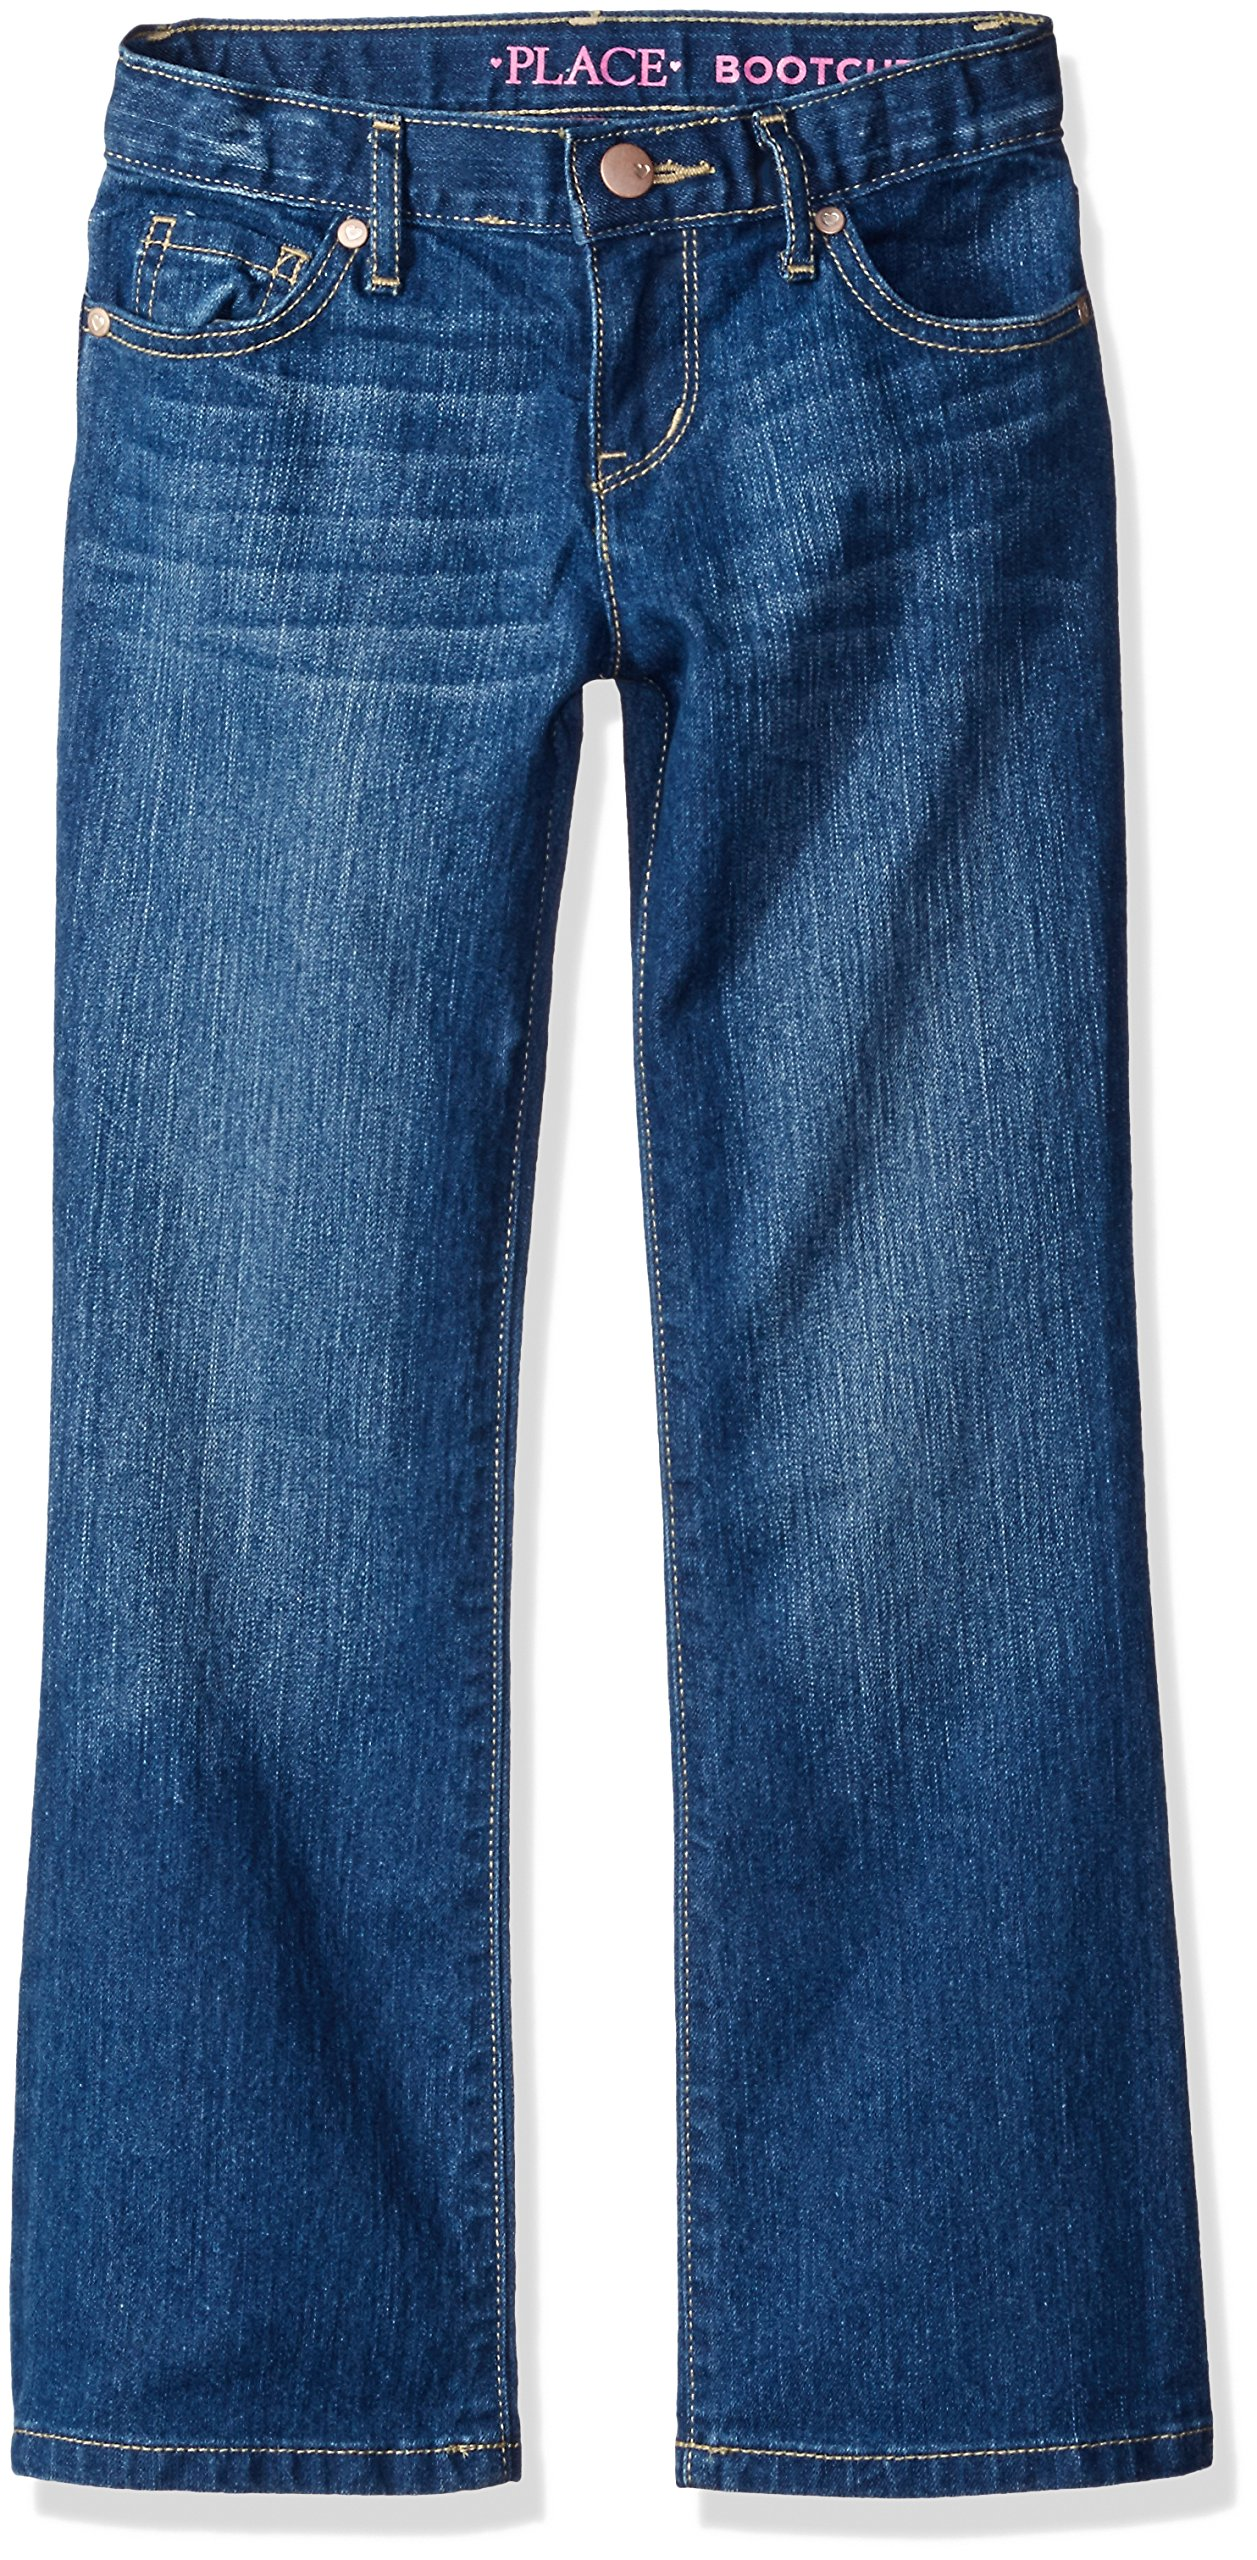 The Children's Place Big Girls' Bootcut Jeans, Indigo Stone, 14 by The Children's Place